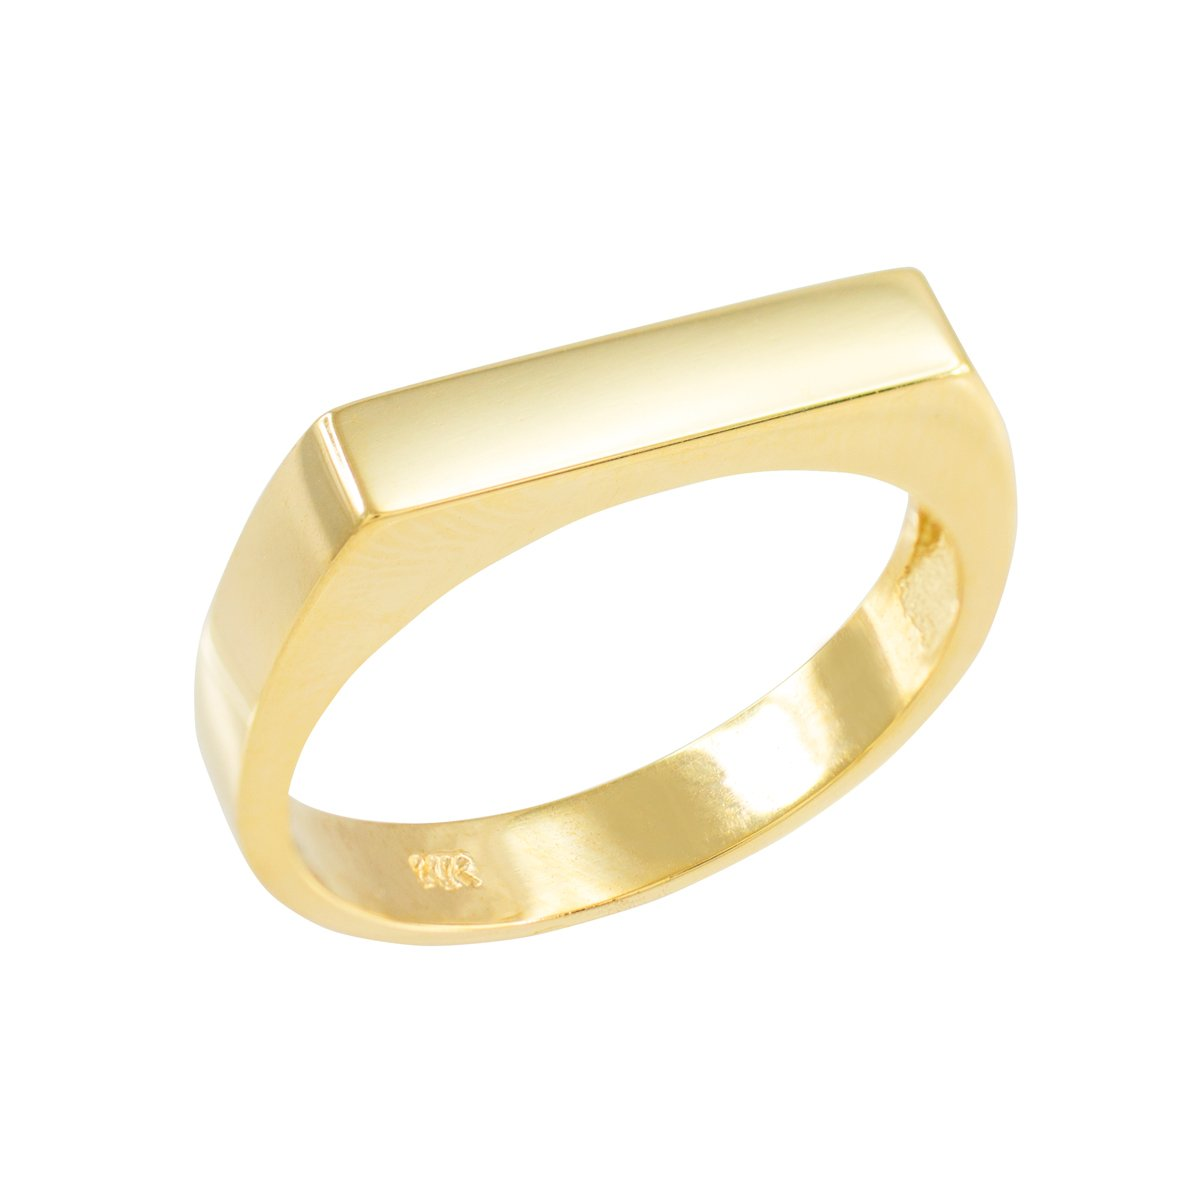 Modern Contemporary Rings Stackable 10k Yellow Gold Custom Engravable Flat Top Signet Ring (Size 10.5)